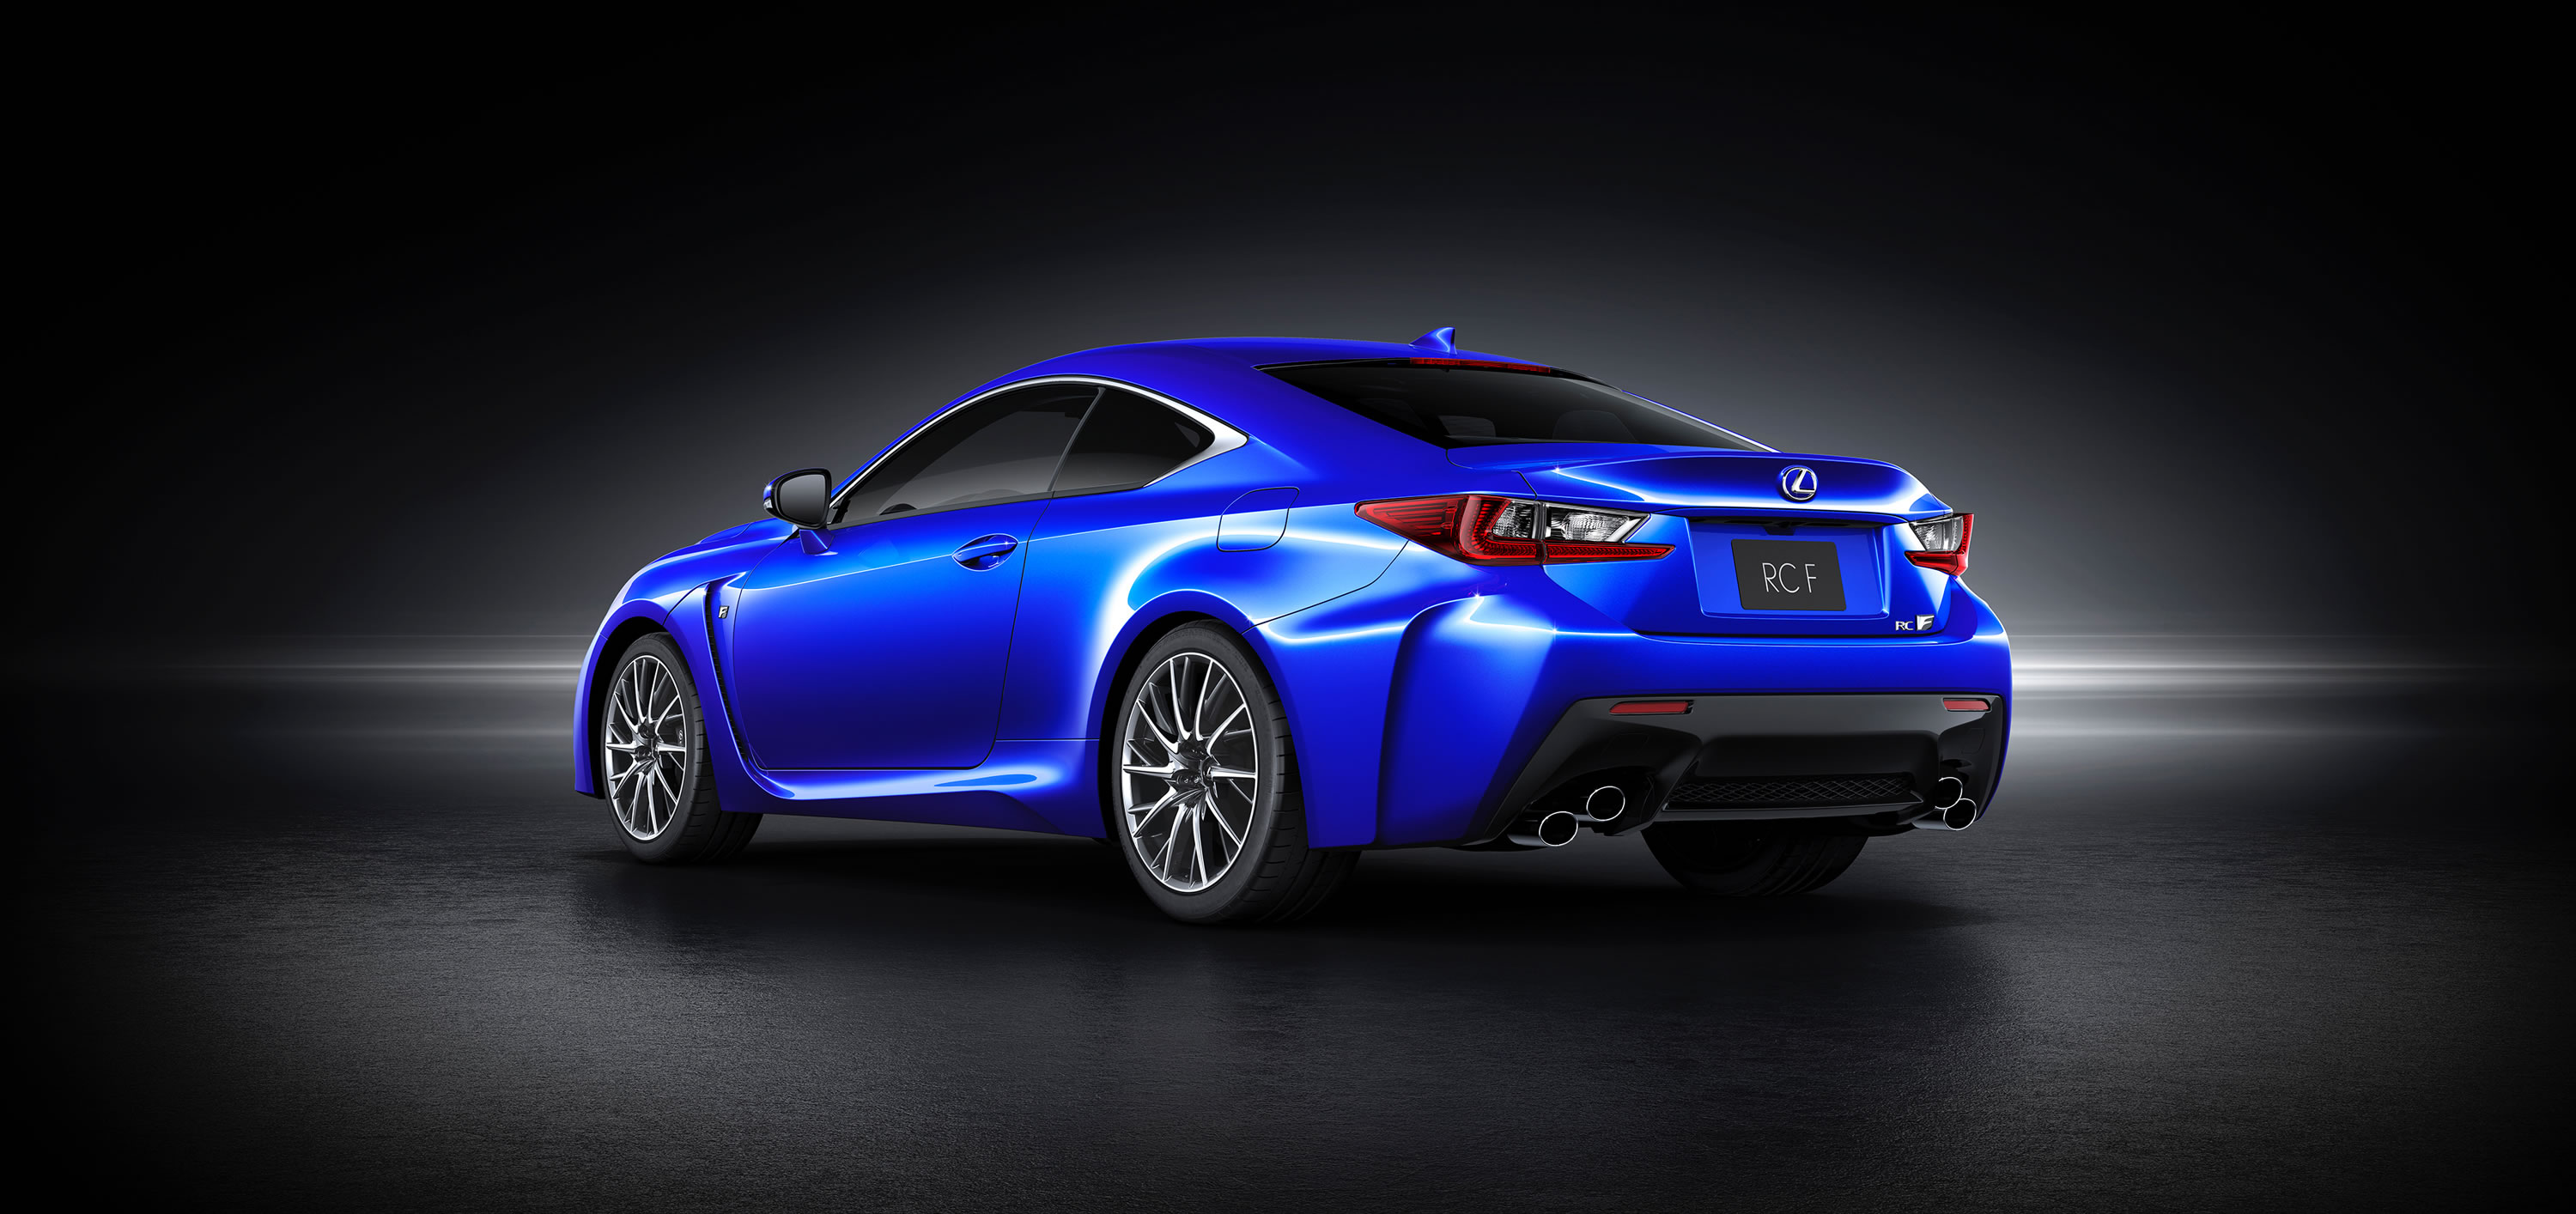 Lexus Rc F 0 60 >> 2015 Lexus RC F Photos, Specs and Review - RS